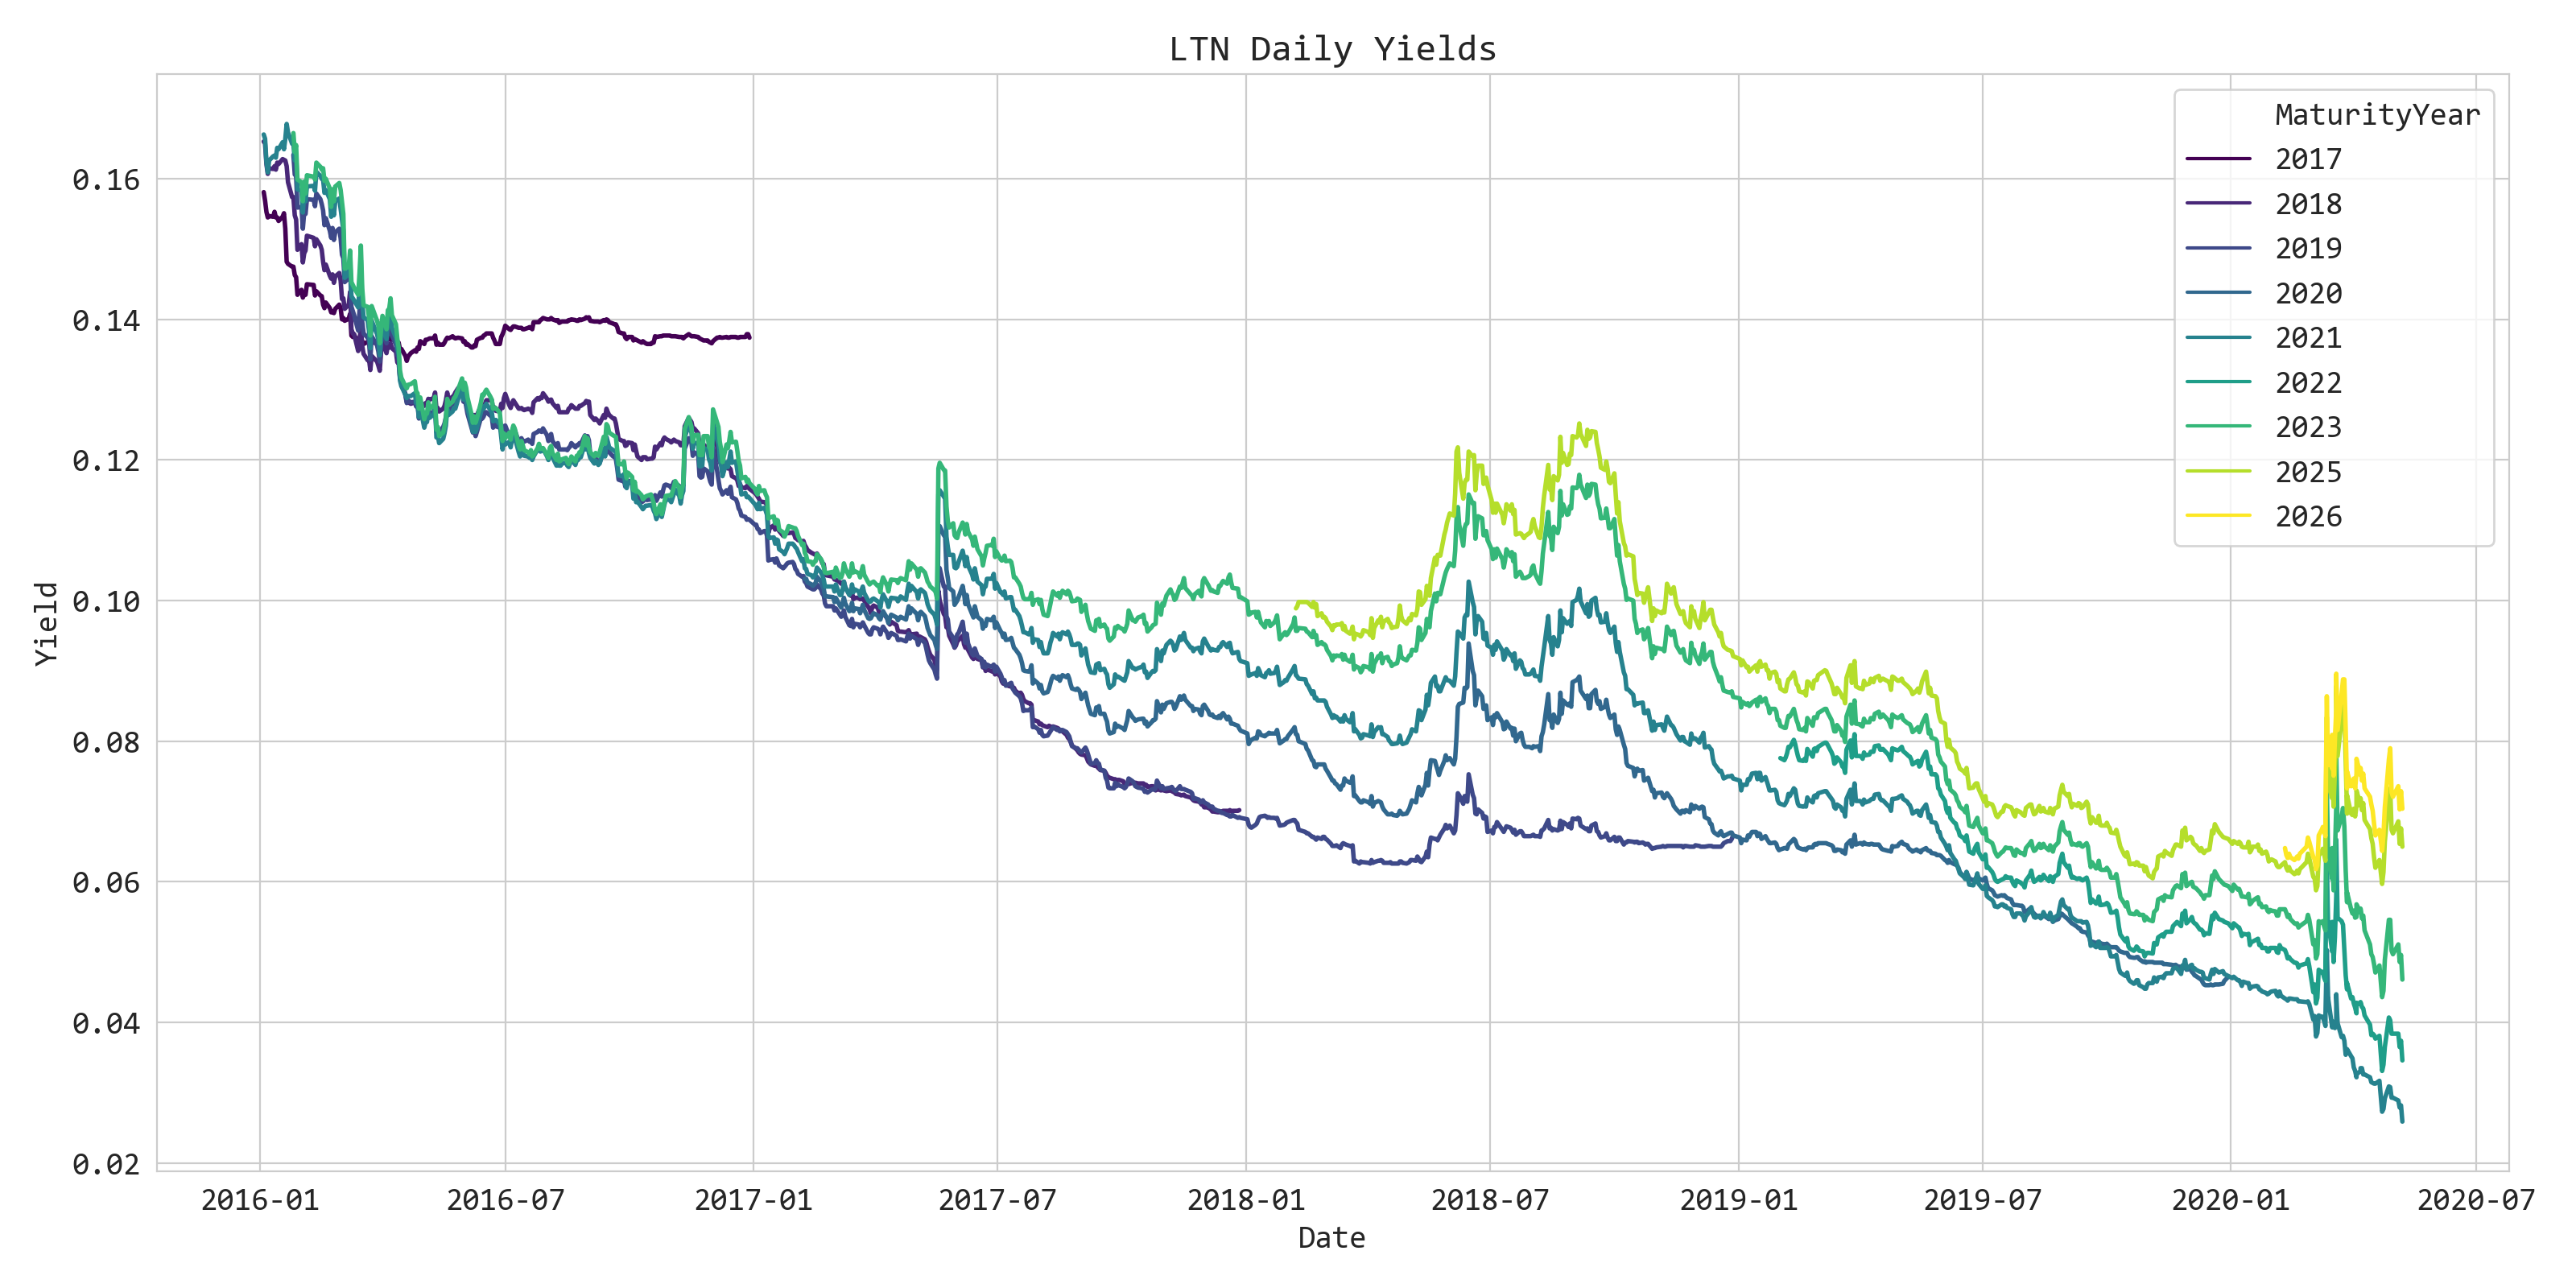 Chart showing LTN daily rates